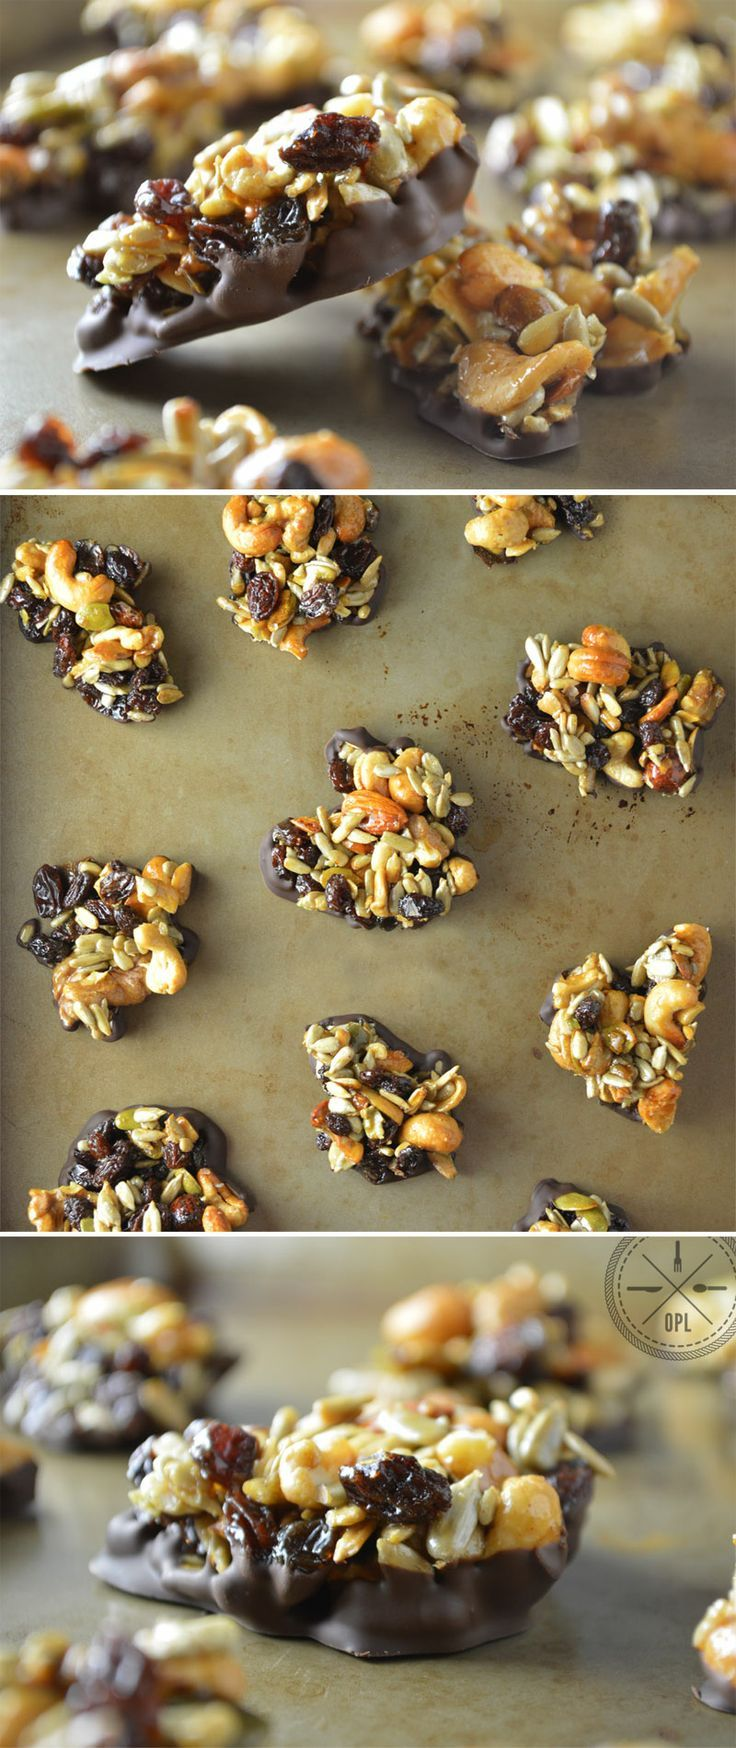 Back Country Clusters by Our Paleo Life - Nuts, seeds, and dried fruit sweetened with honey and wrapped in dark chocolate. #paleo